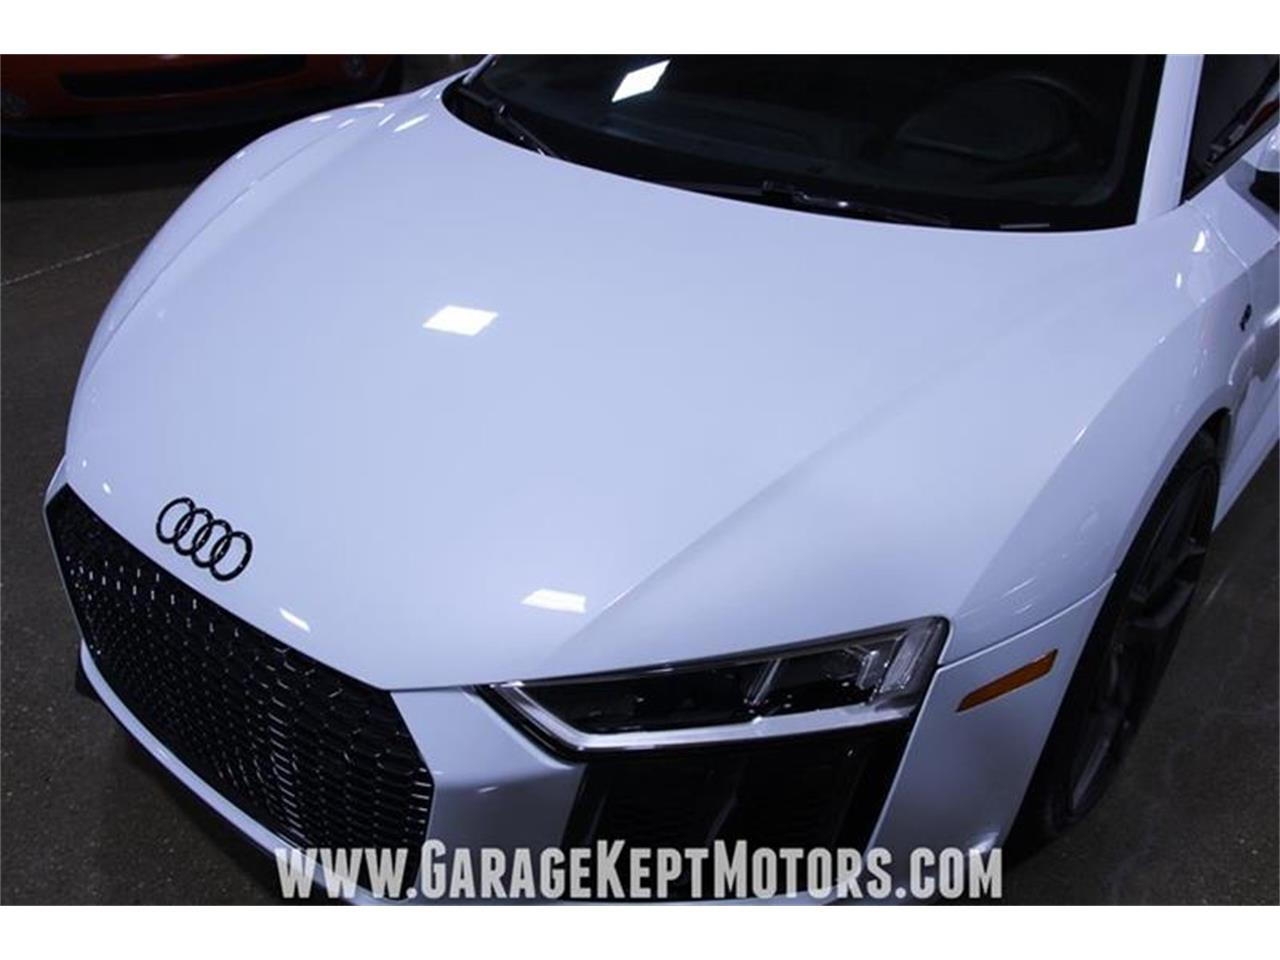 Large Picture of 2017 Audi R8 located in Grand Rapids Michigan Offered by Garage Kept Motors - QBYC